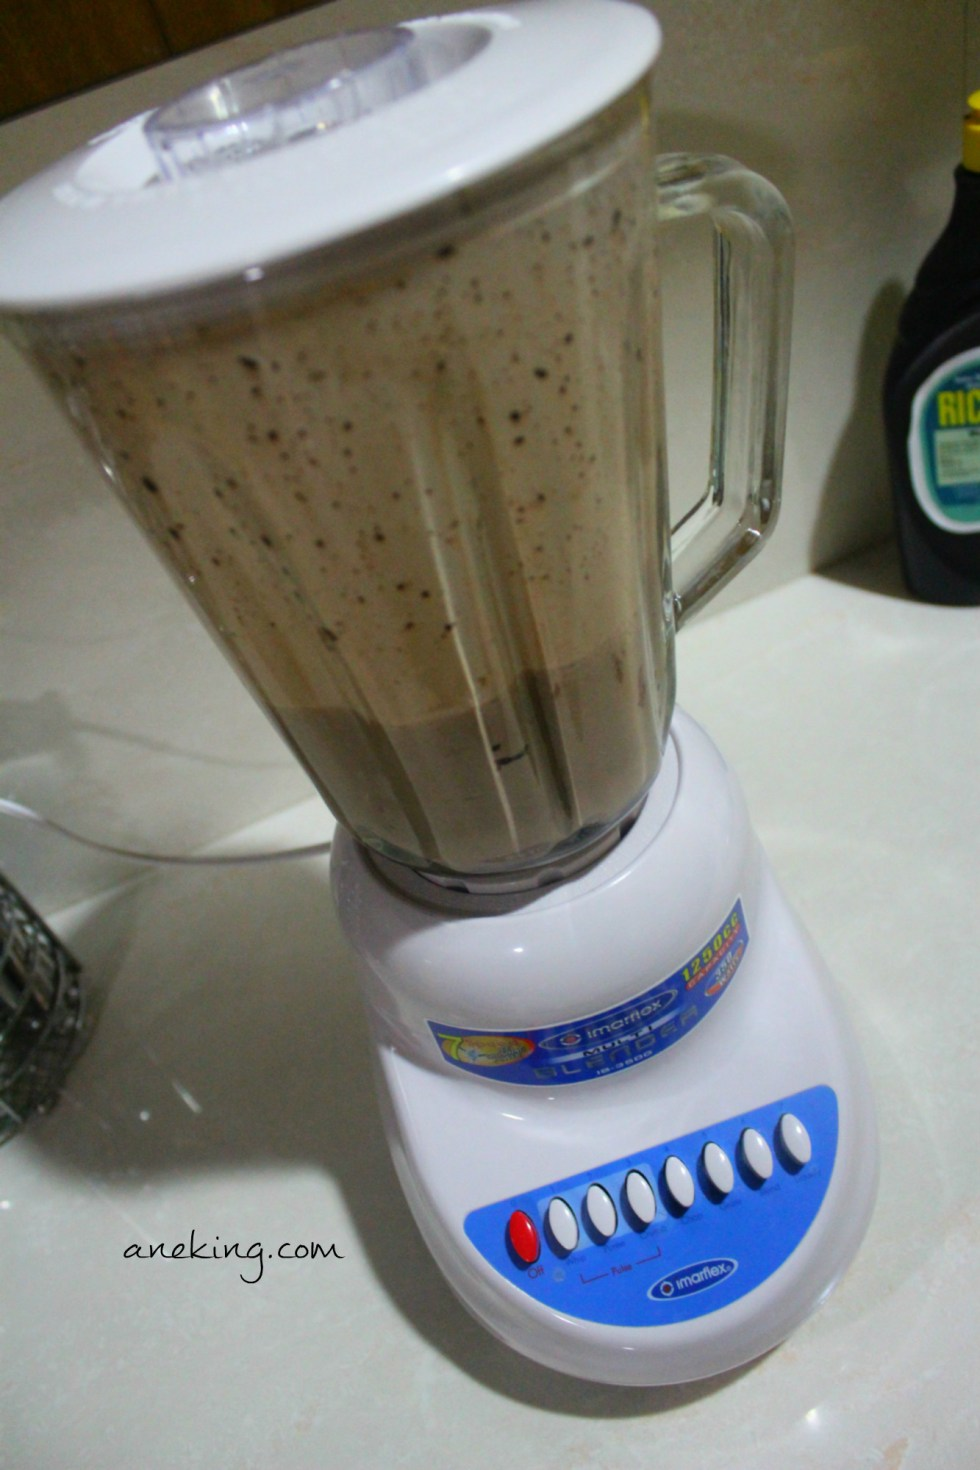 6. Blend the mixture until you reach your desired smoothness.